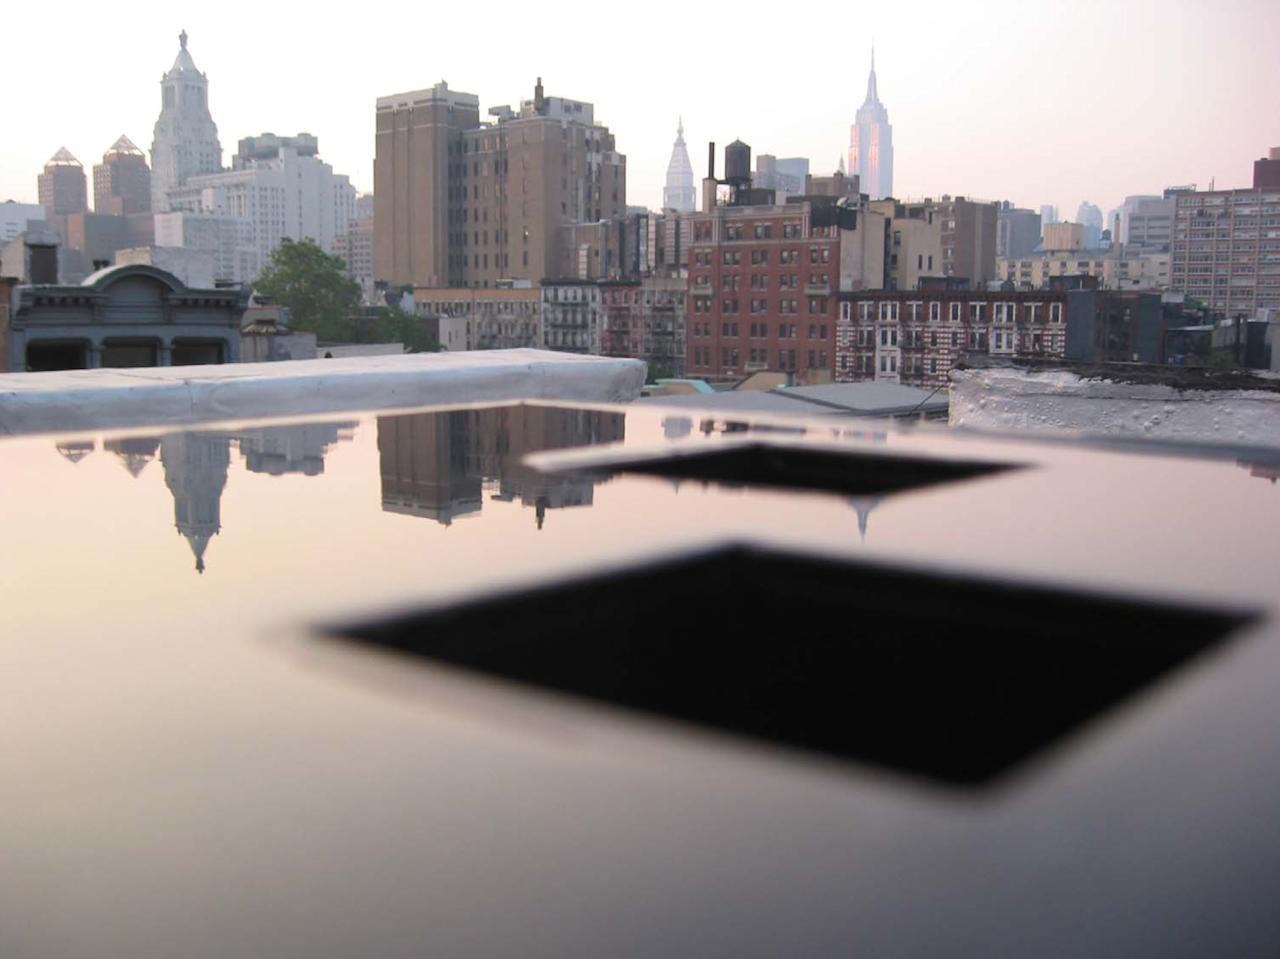 Mr. Arad built a Plexiglas model and photographed it on the rooftop of his building in the East Village against the Manhattan skyline.  Handel Architects LLP